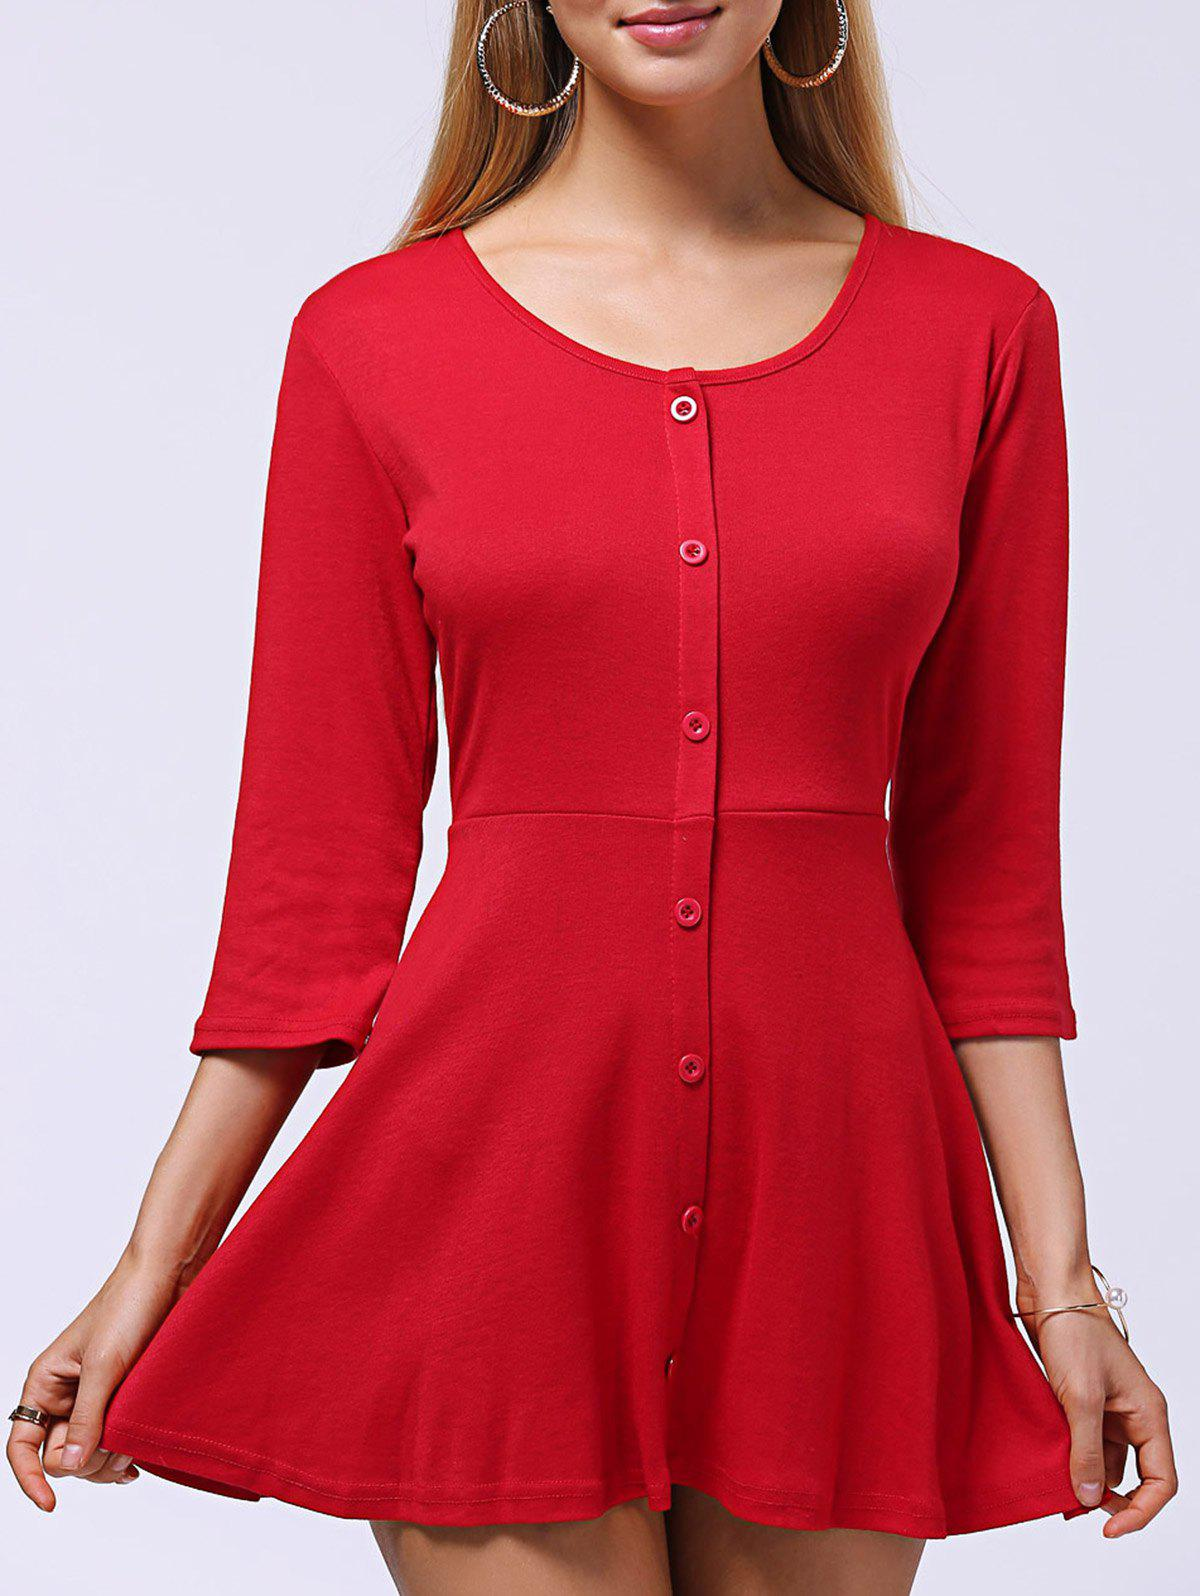 Round Neck Button-Down Sweet Knit Women's Dress - RED XL